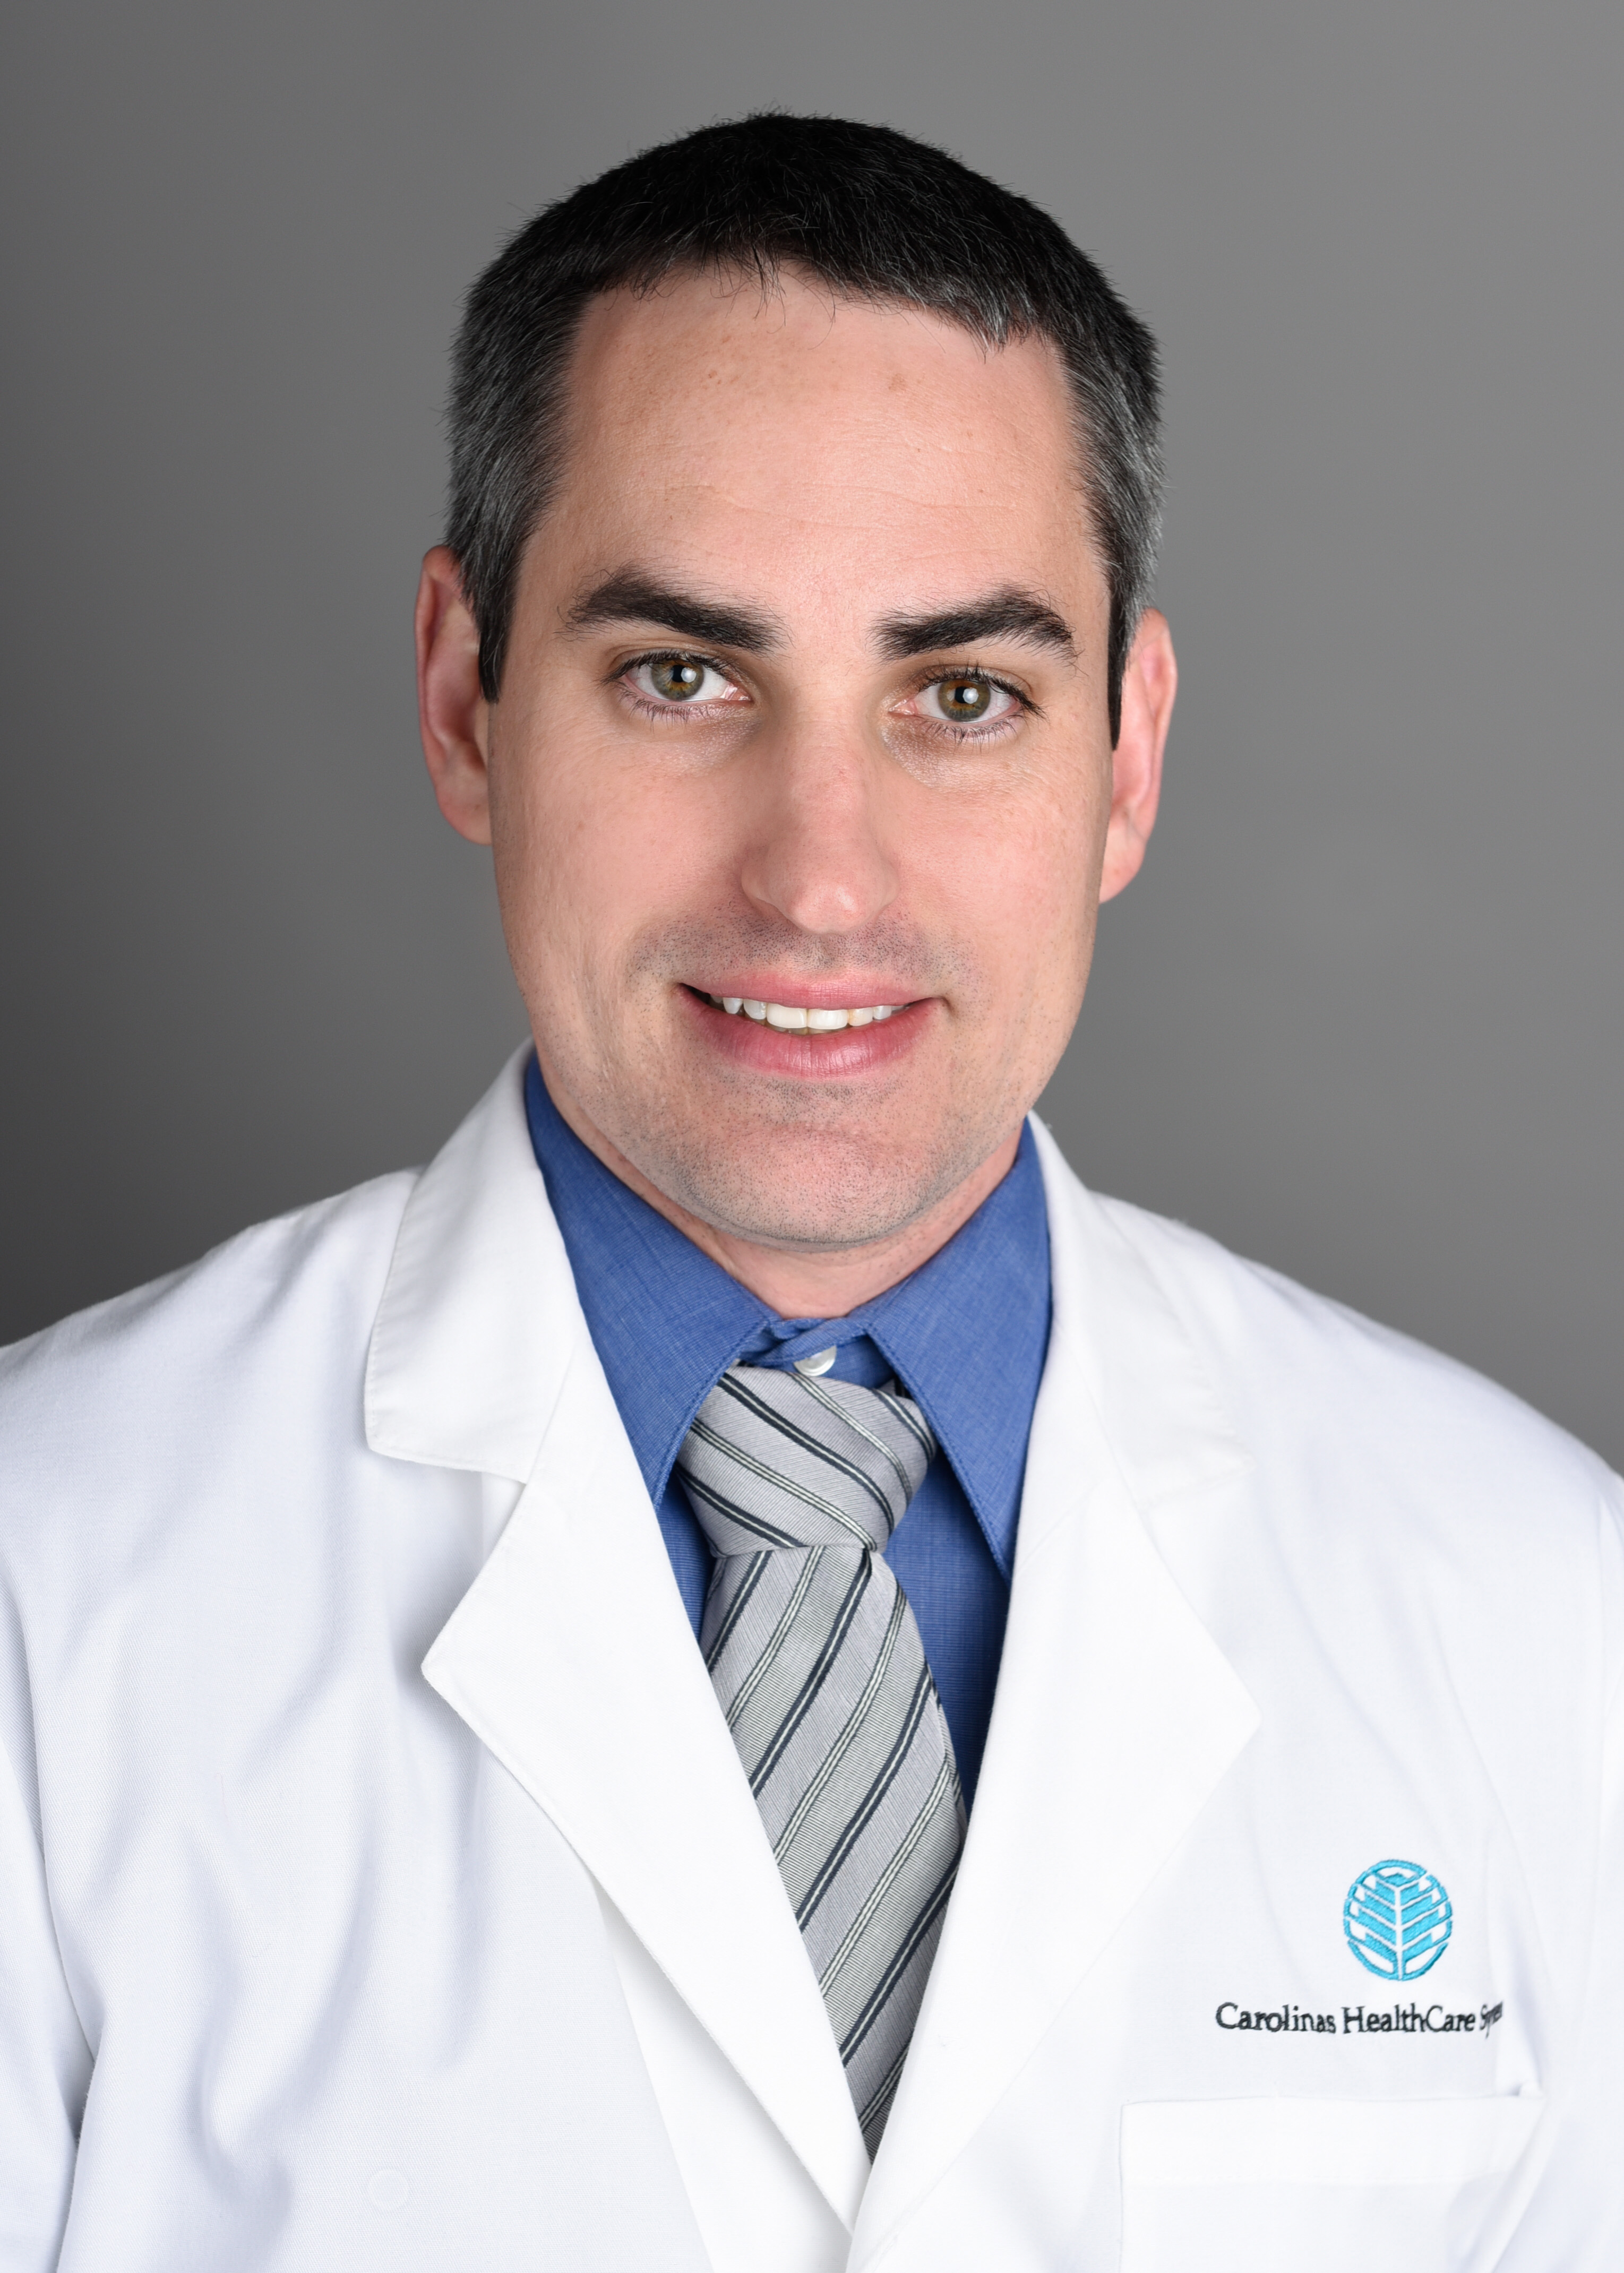 Joseph Burch, MD